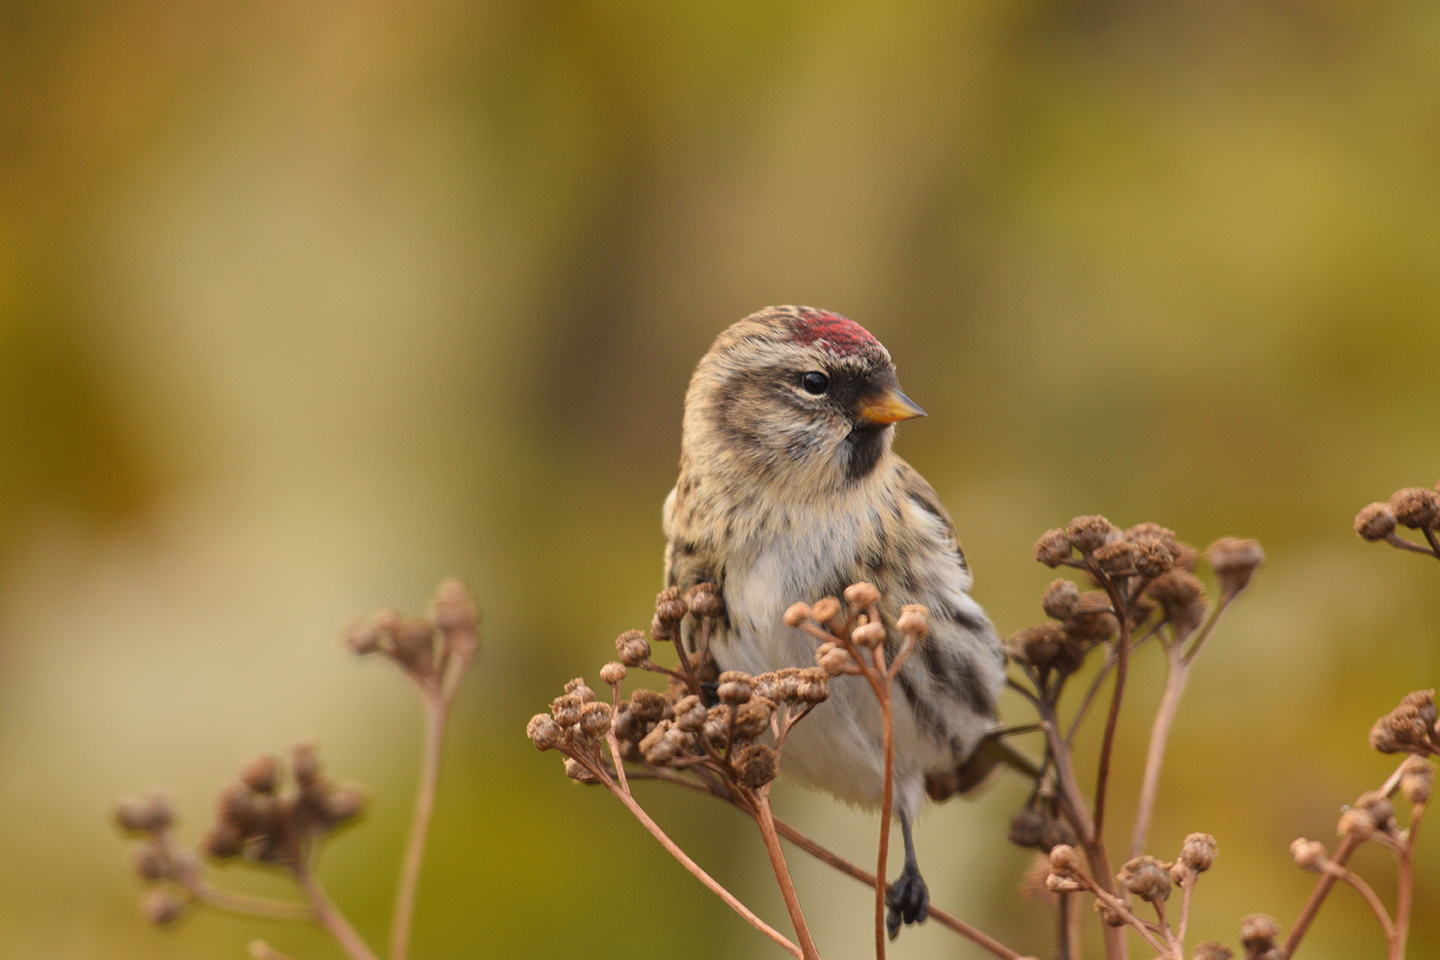 A common redpoll perched among dried flowers